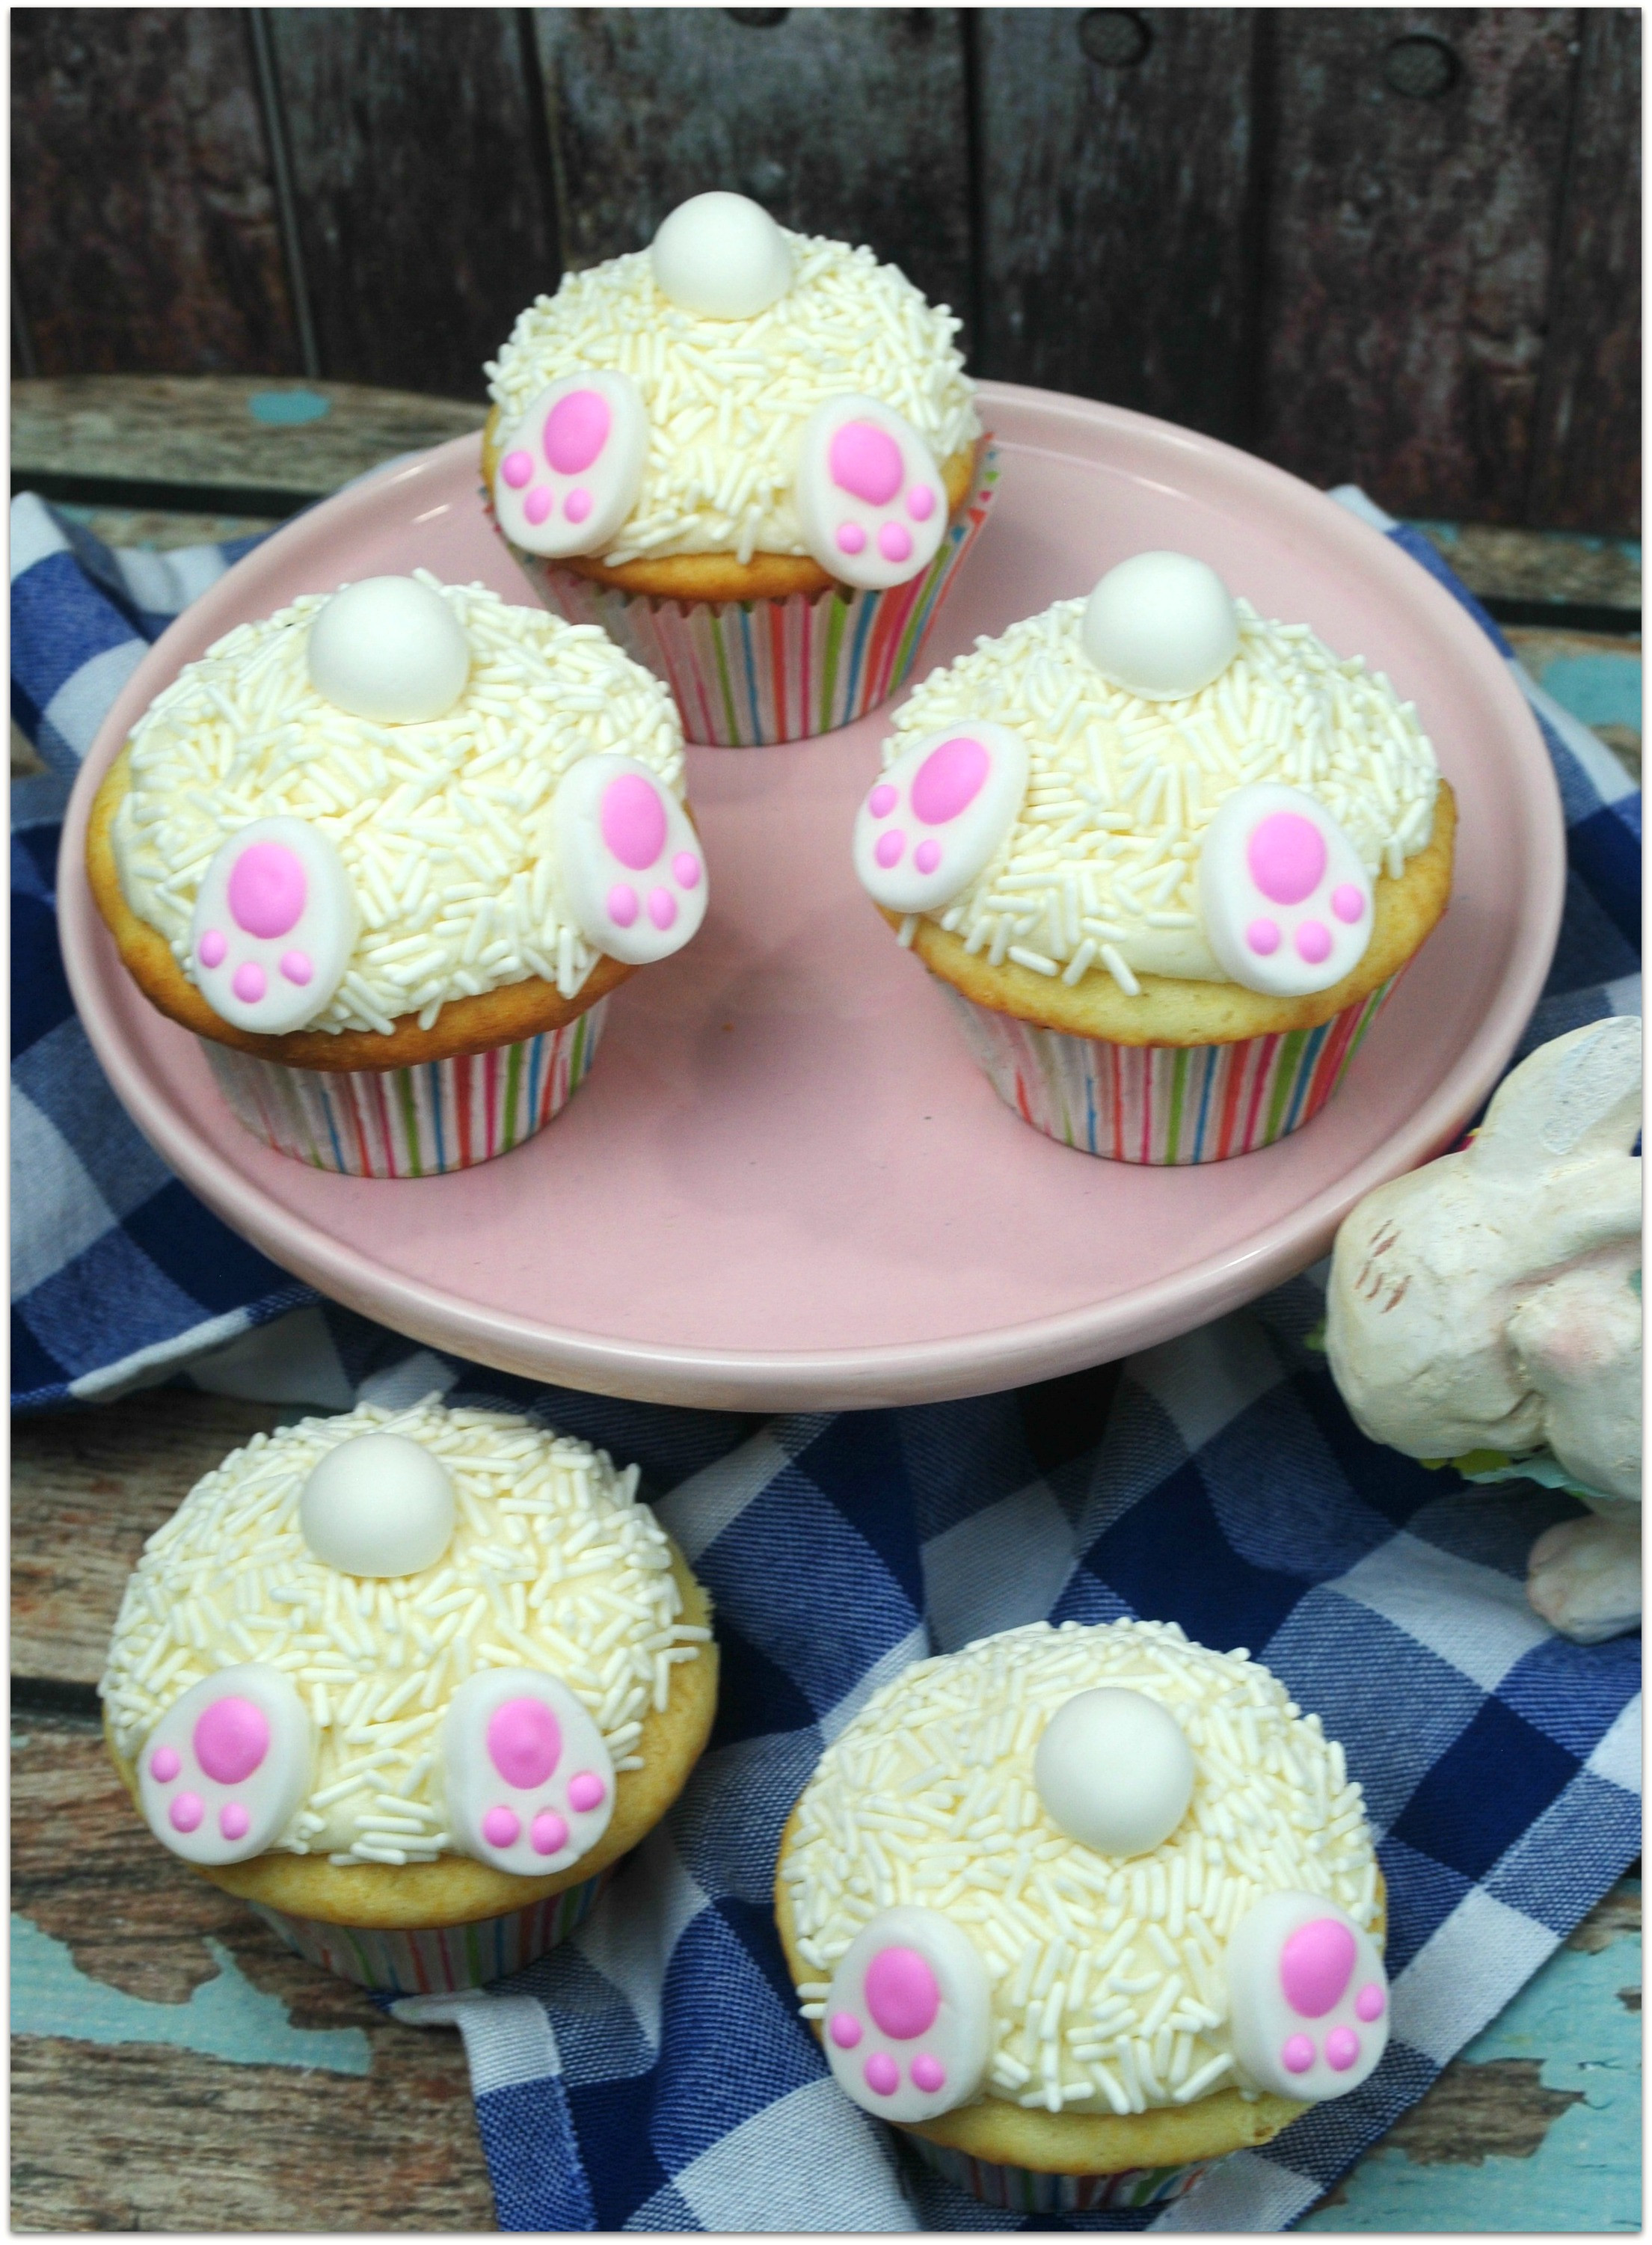 Bunny Butt Cupcakes  These Easter Bunny Cake Cupcakes are so adorable